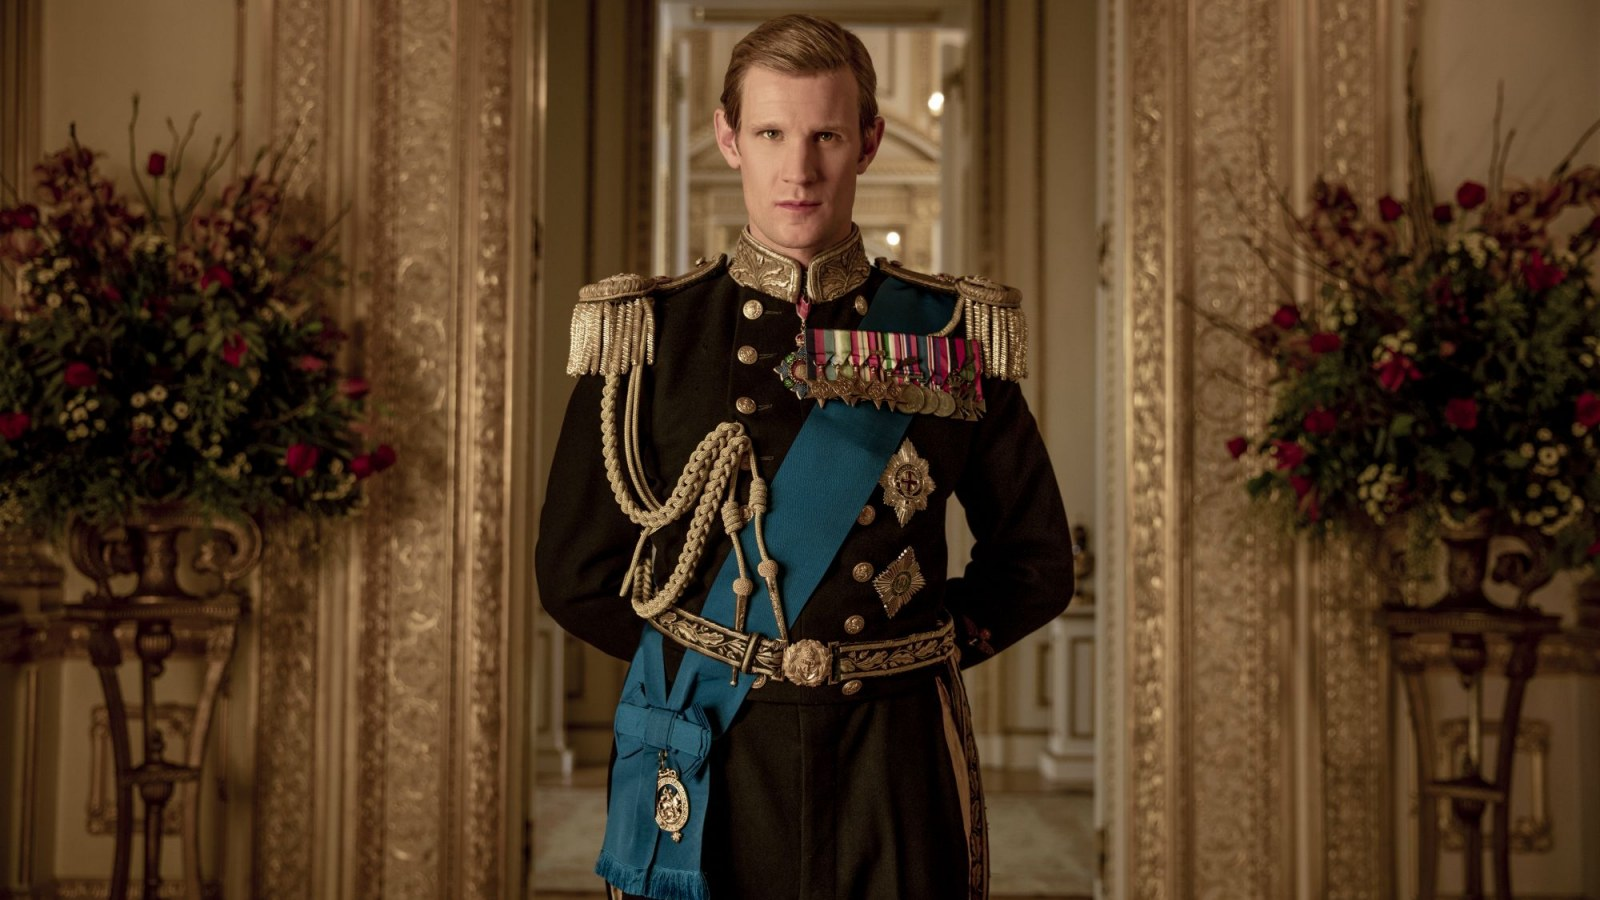 Did Prince Philip Cheat on Queen Elizabeth? 'The Crown' Star